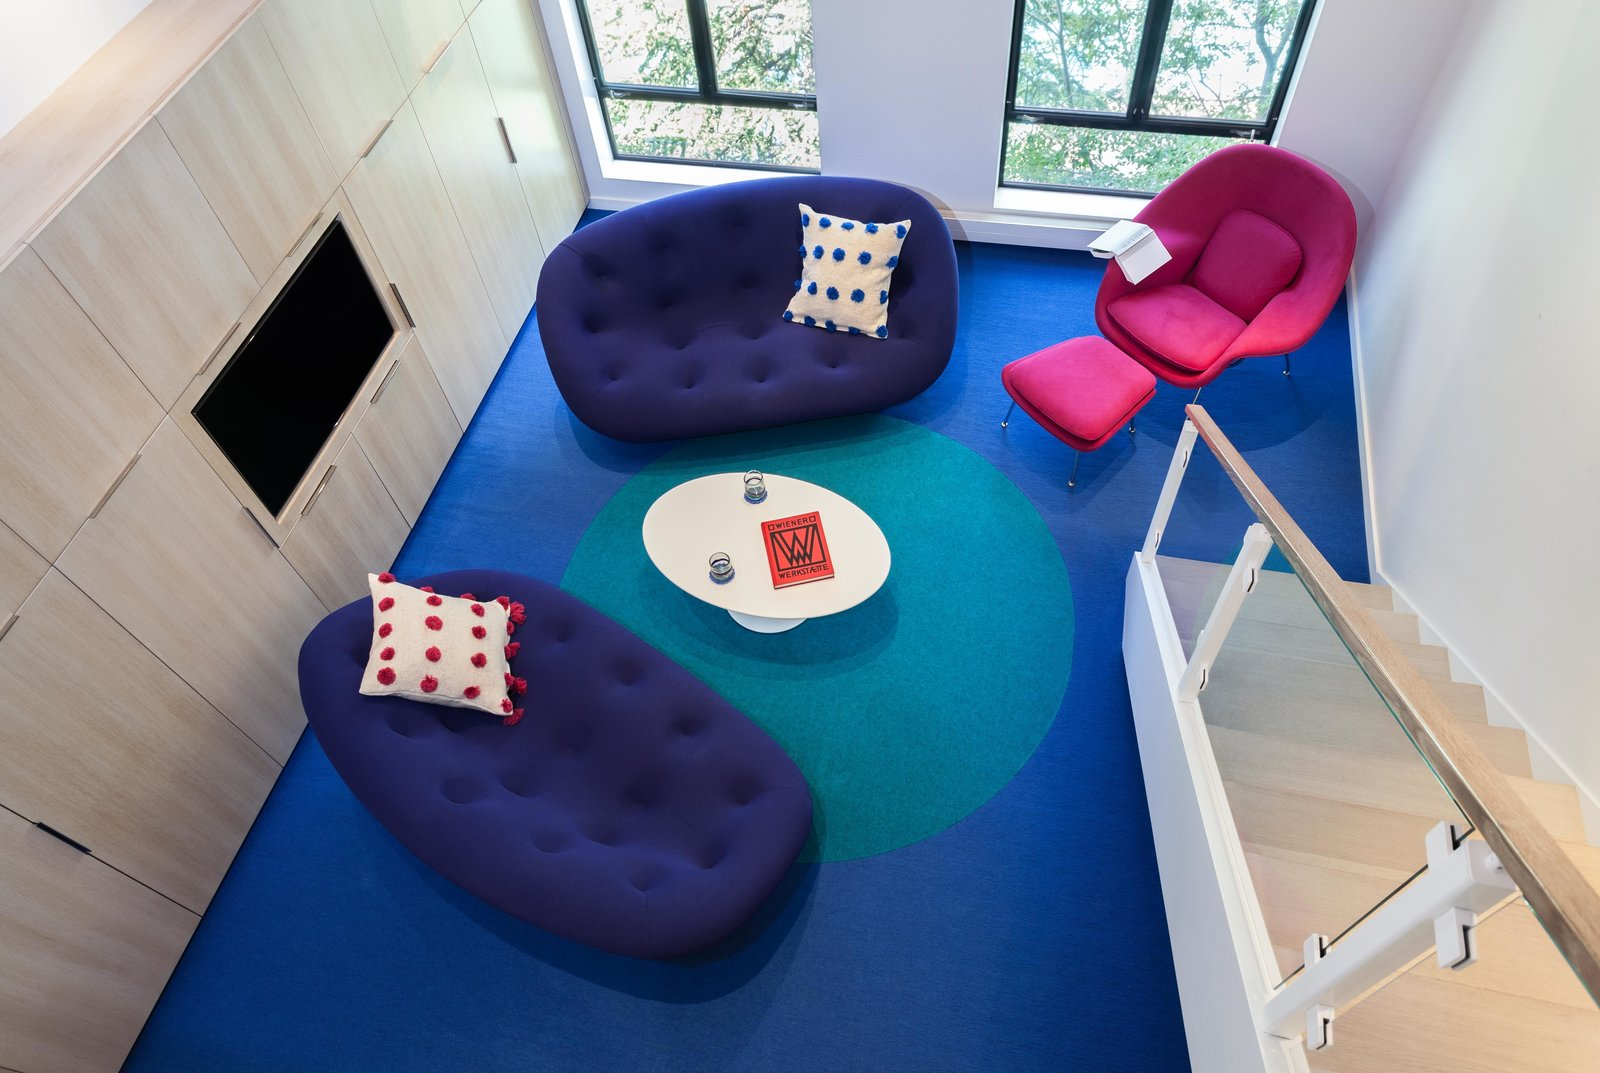 As a rug designer, Simon planned out the large blue dot on the bright blue Tretford carpet. Simon explains that this tough carpet is made with ribbed goats hair and has recently made a comeback after being a popular wall covering material in the '70s.